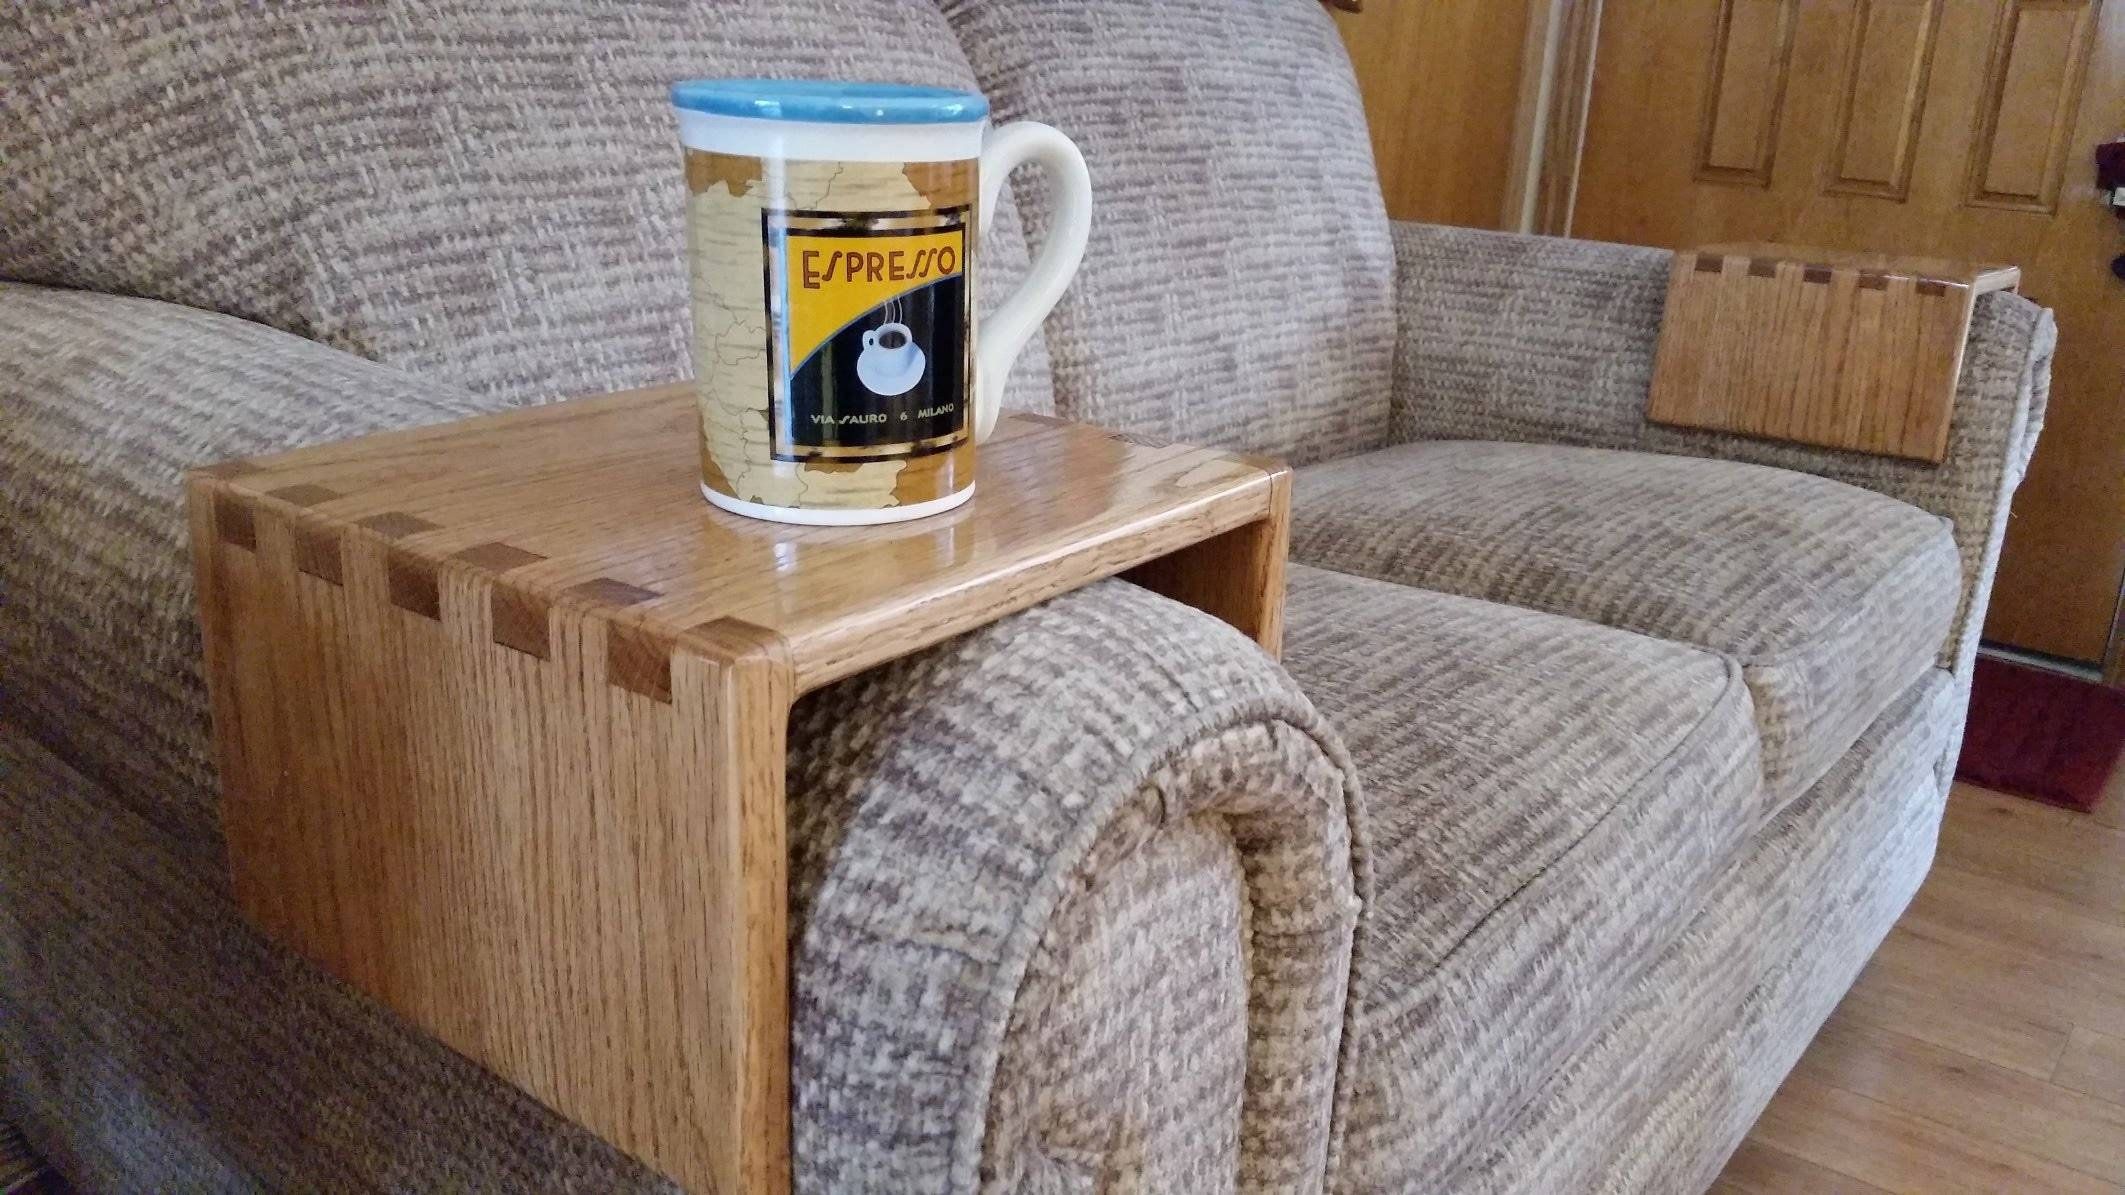 Diy – Sofa Drink Holder Using Simple Box Joints - Youtube with Sofa Drink Tables (Image 12 of 30)